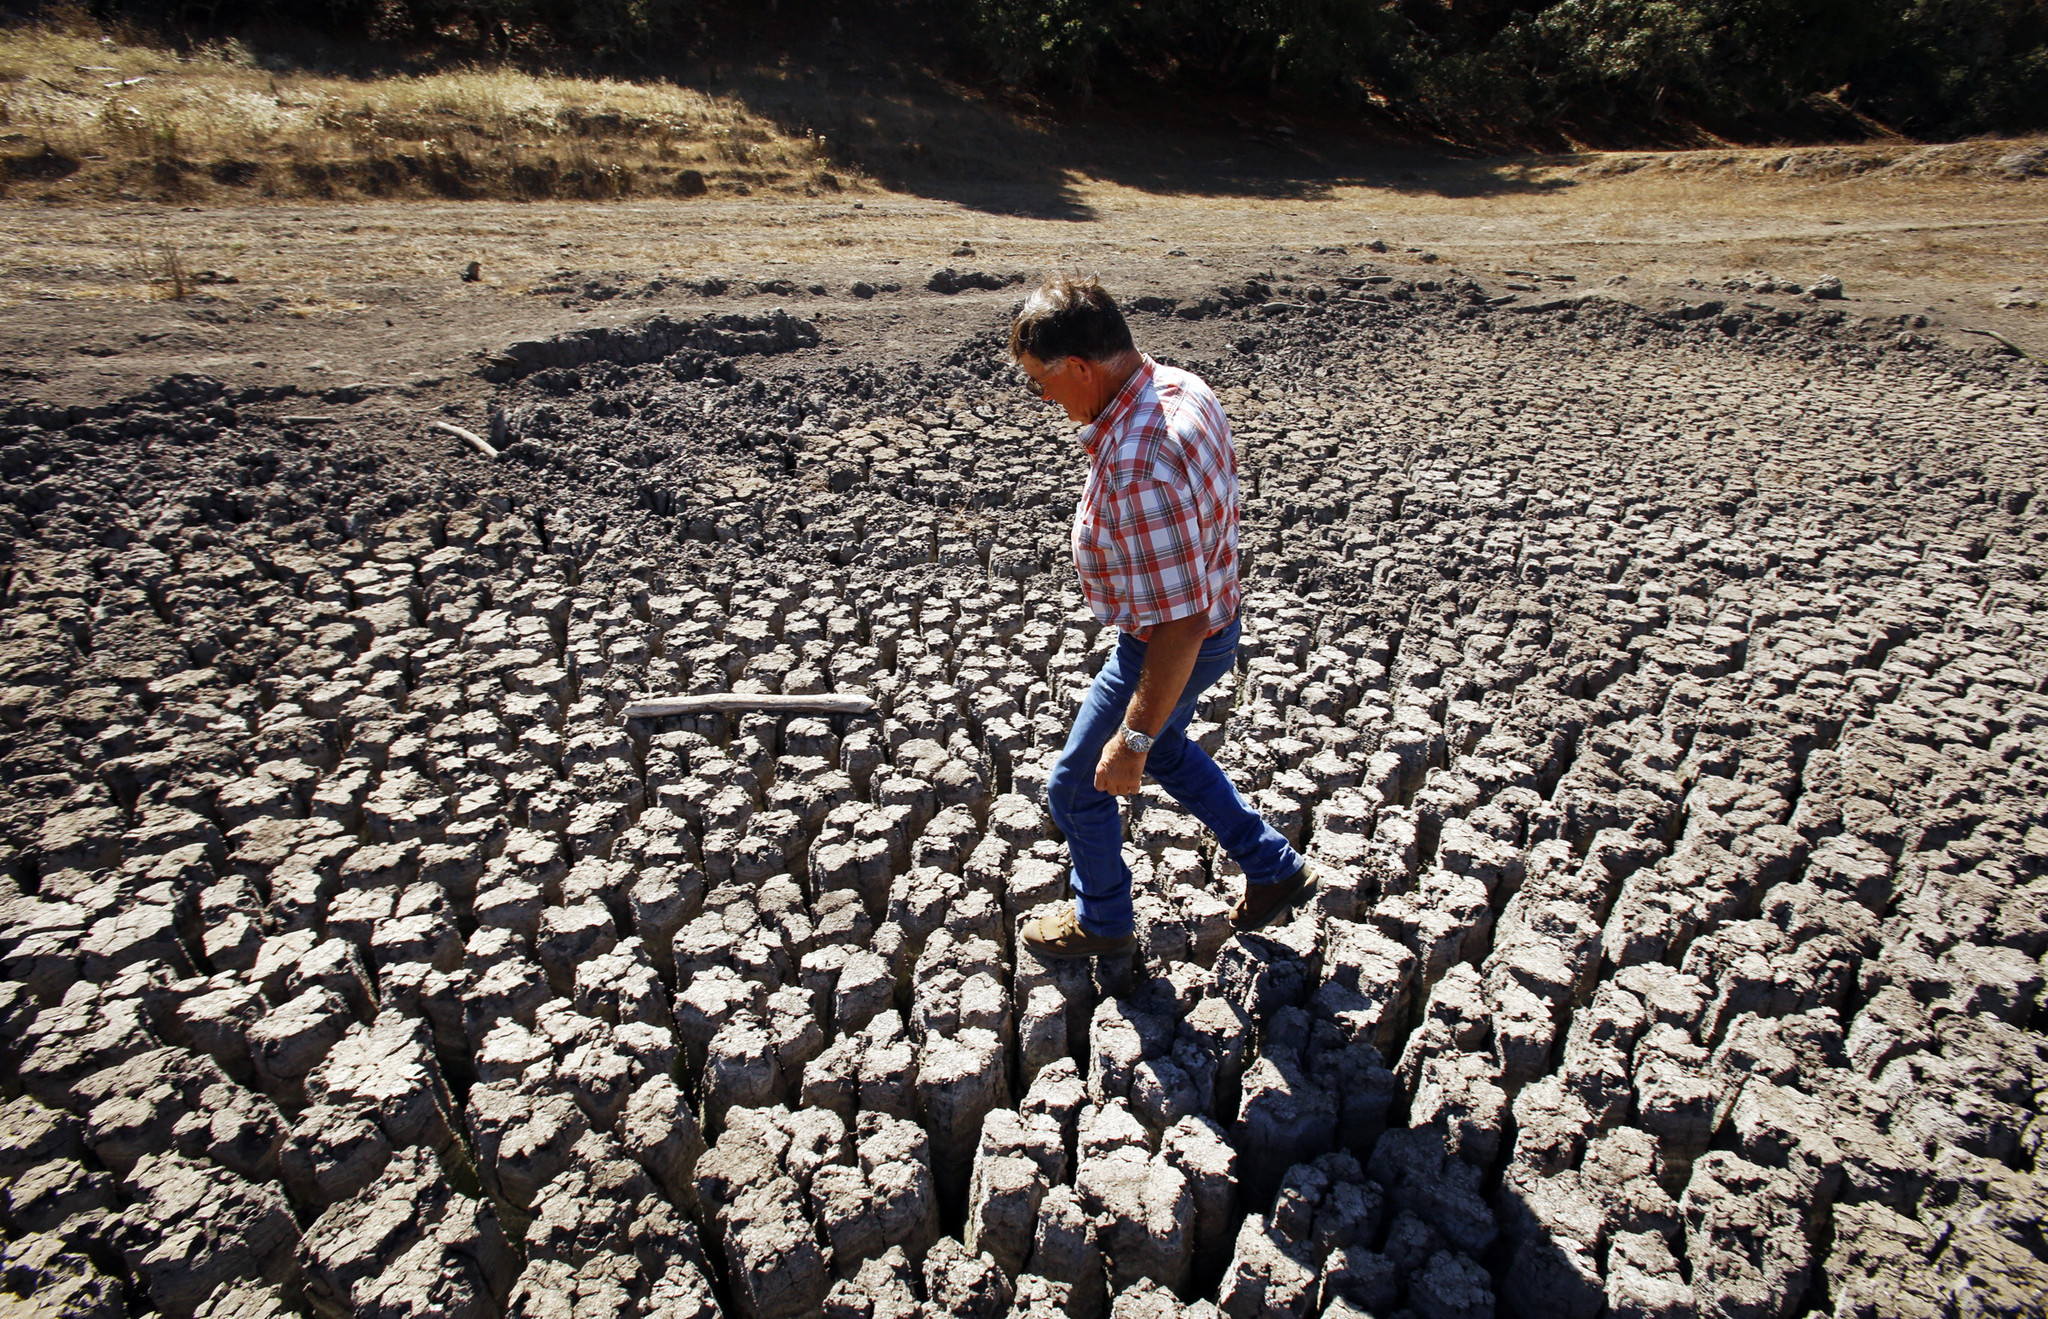 Drought Watch: A dry winter could mean tougher restrictions